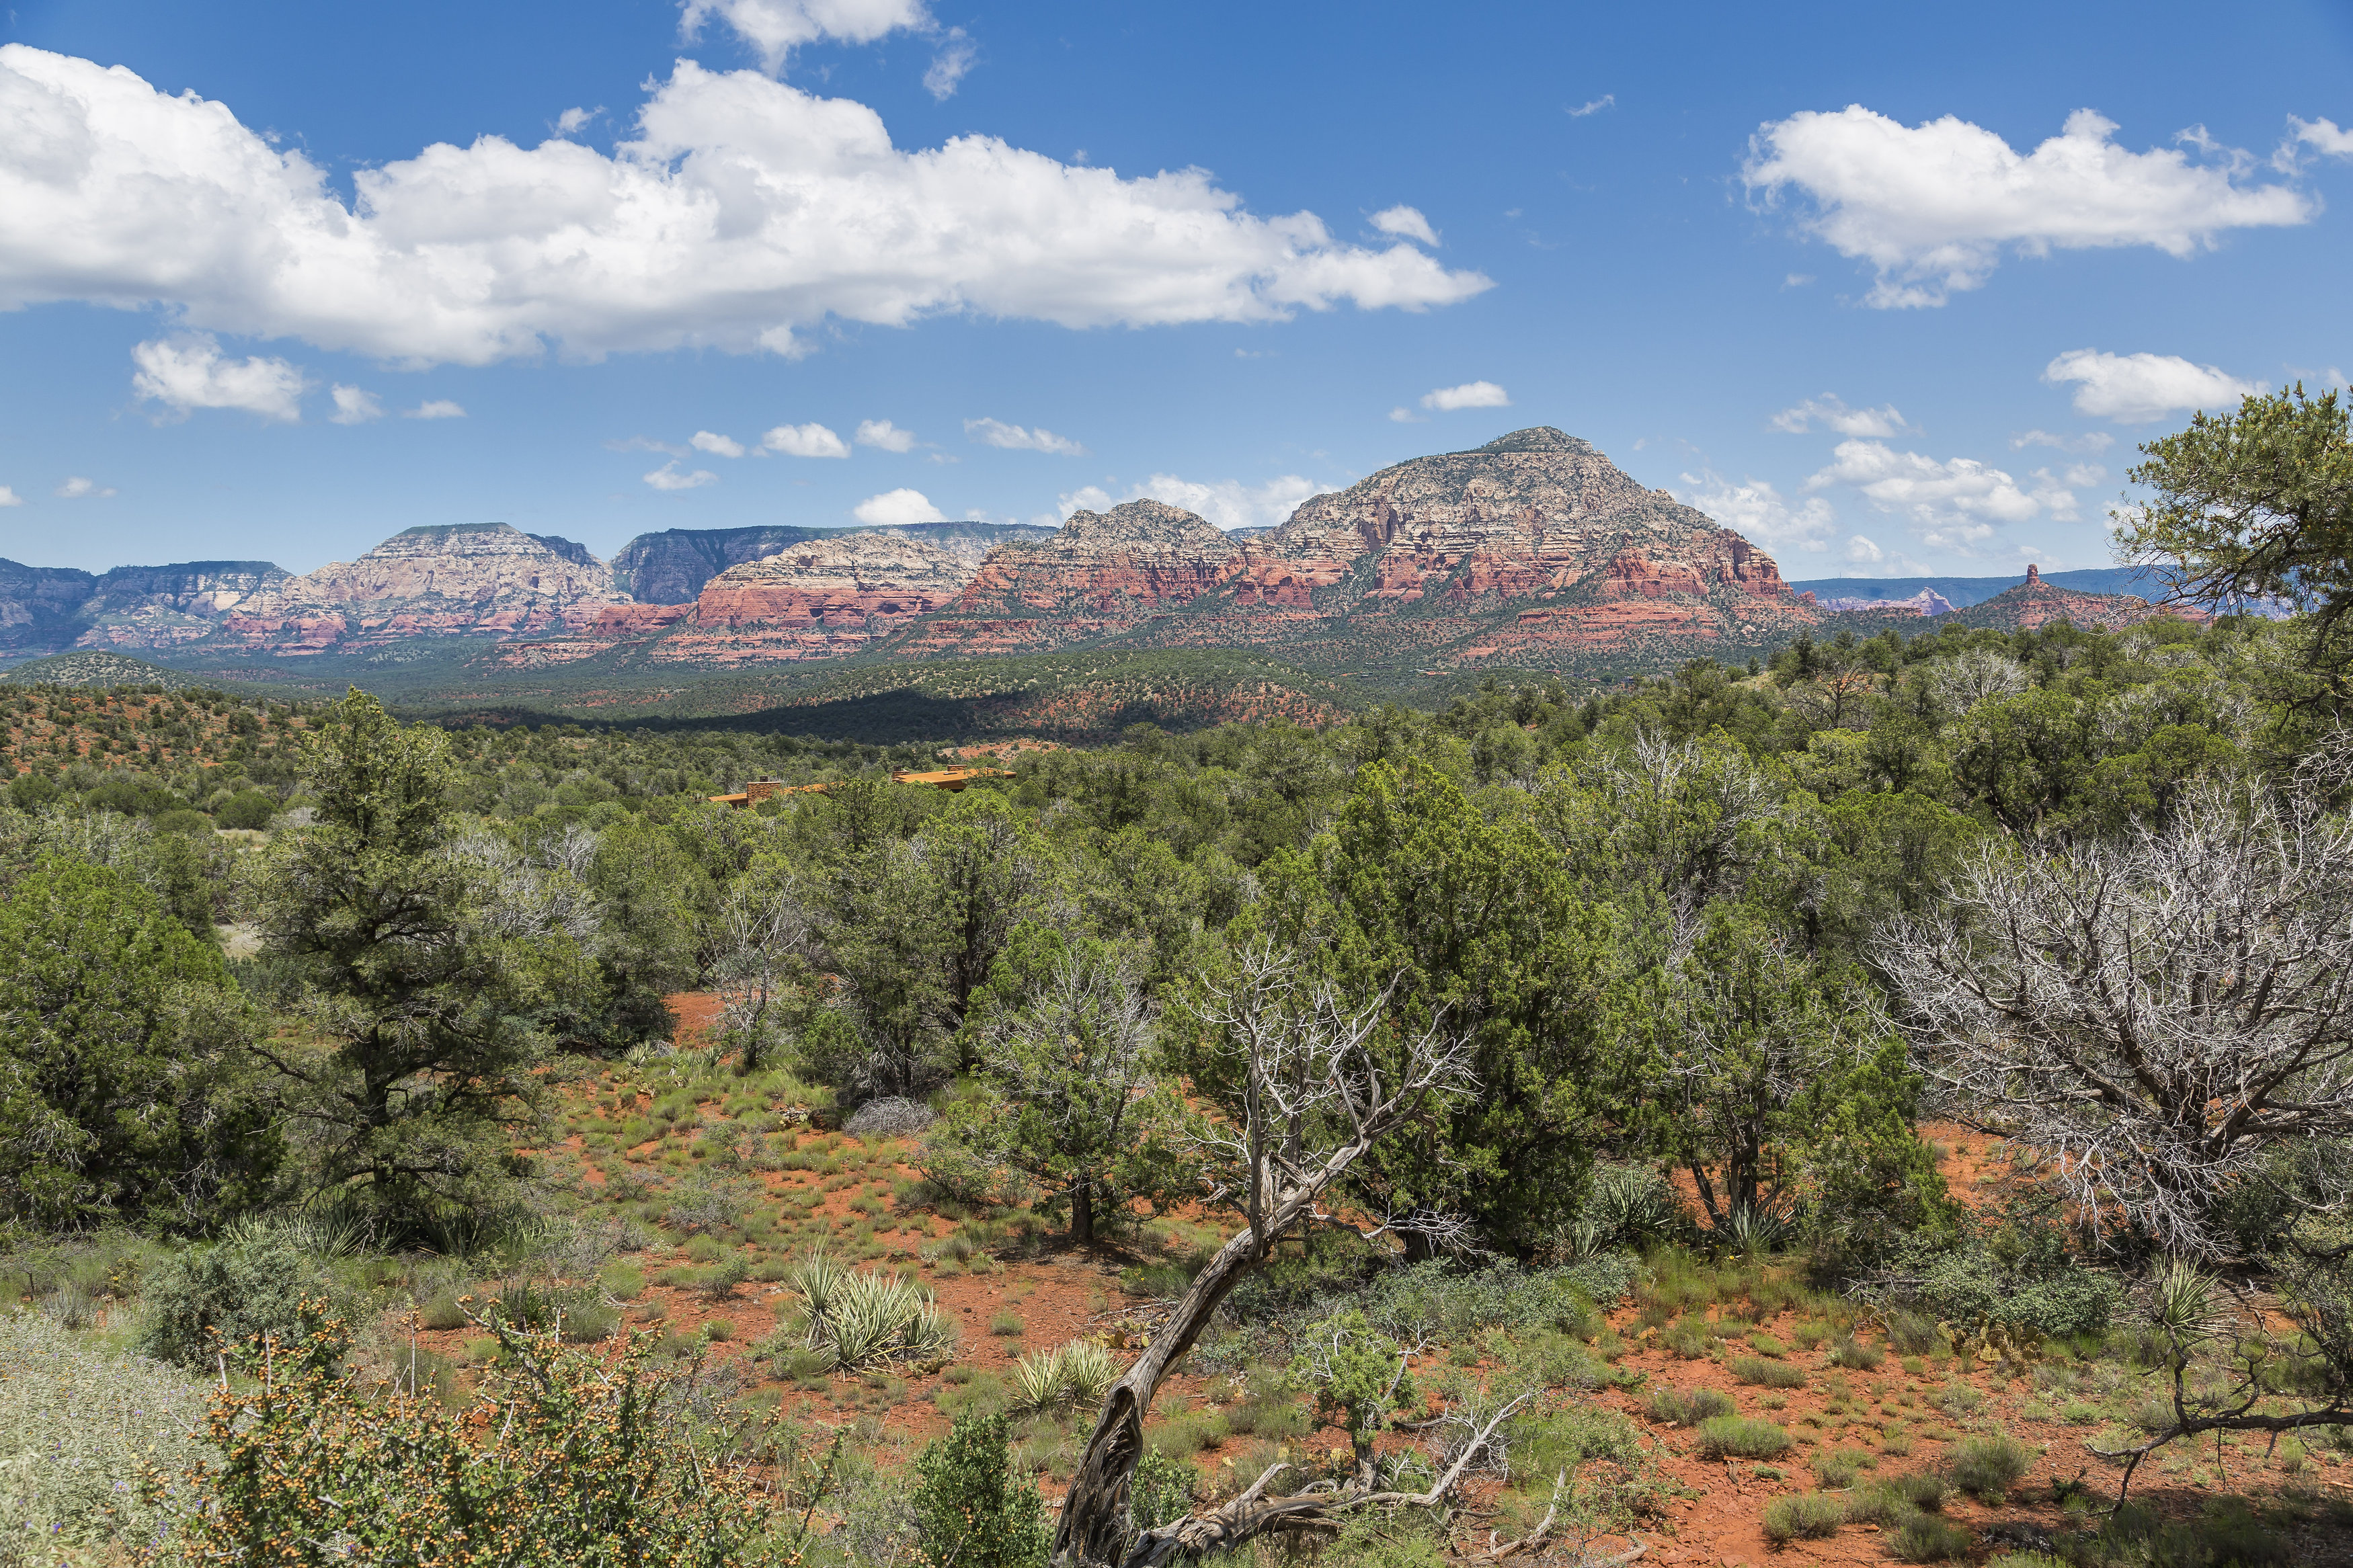 Terreno por un Venta en Lot 19 Very private lot with expansive red rock views. 155 Altair AVE 19 Sedona, Arizona, 86336 Estados Unidos